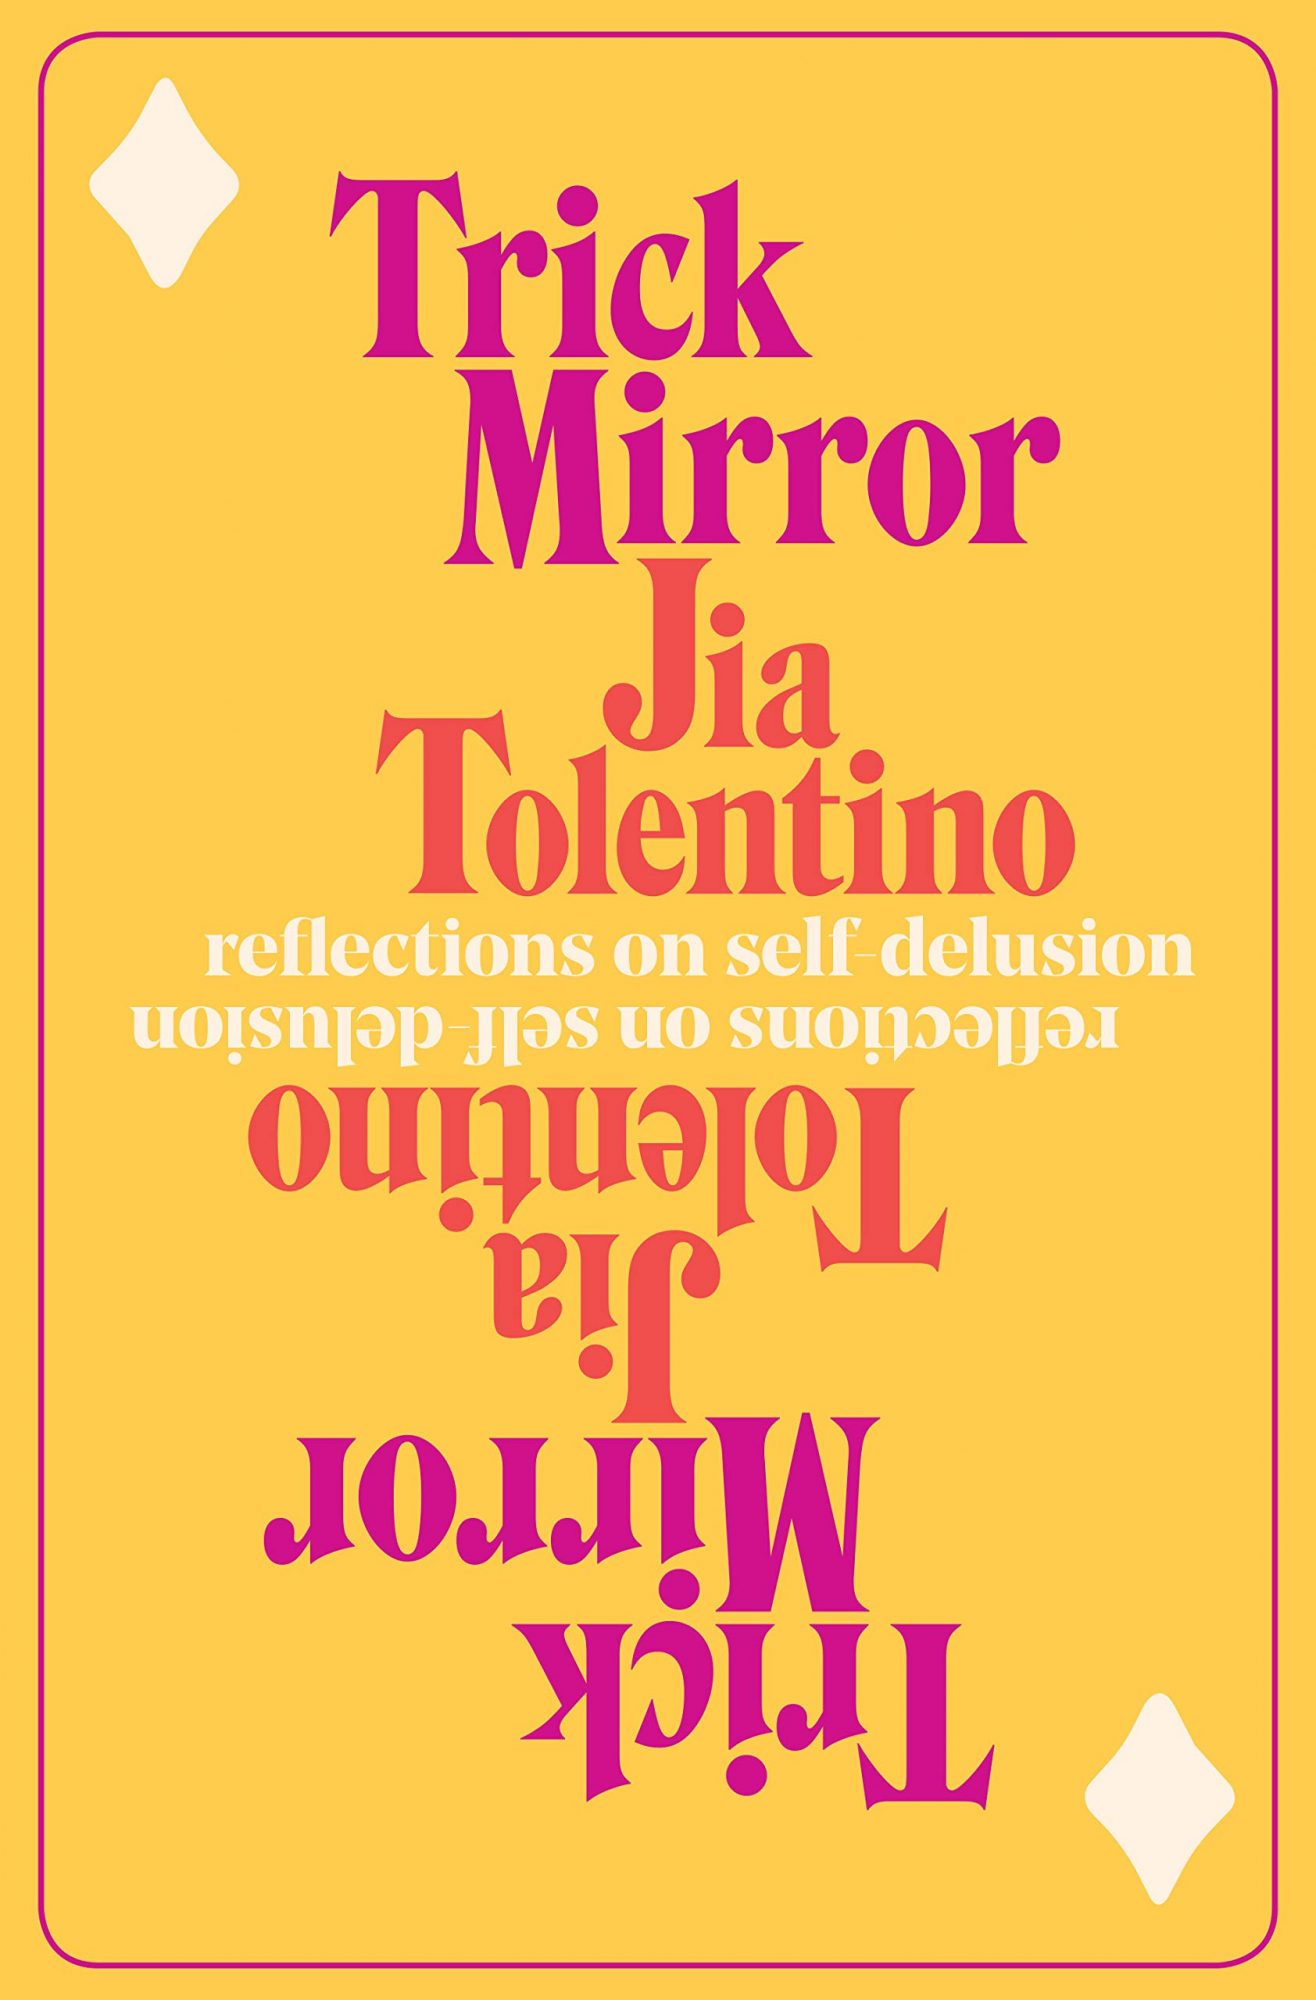 picture-of-trick-mirror-book-photo